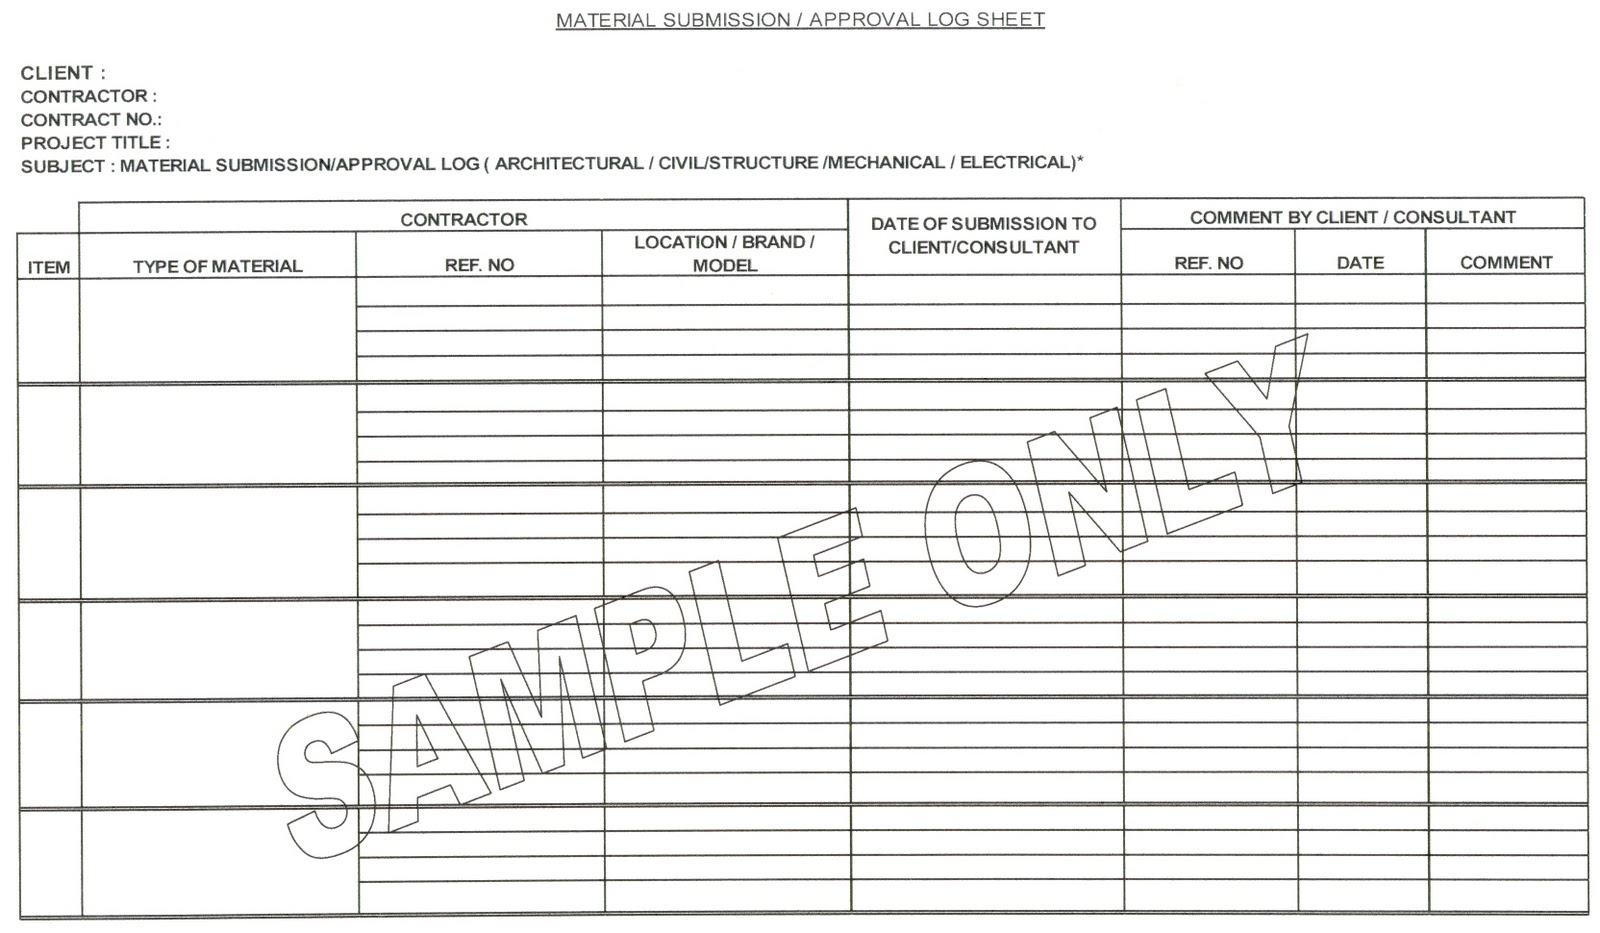 CONSTRUCTION MANAGER MATERIAL APPROVAL LOG FORM